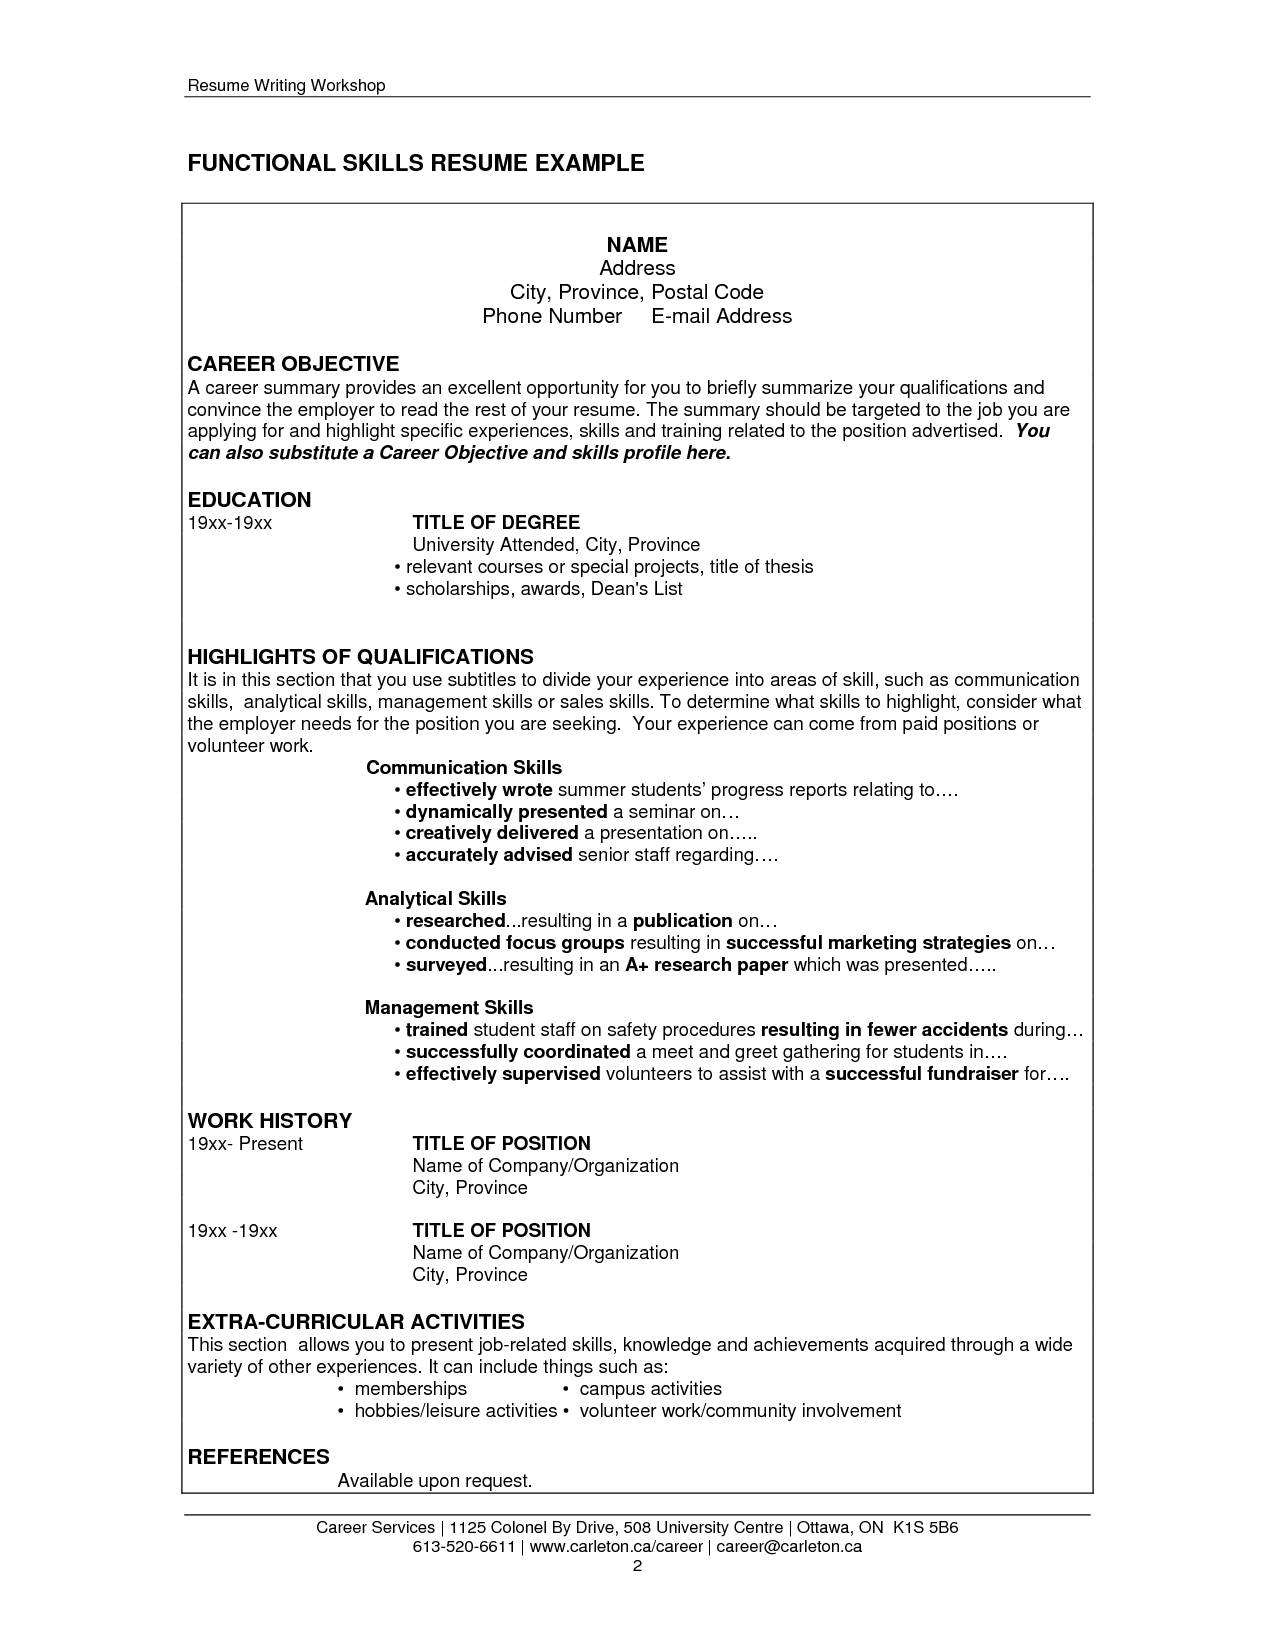 Resume Sample Of Skills And Abilities Resume Sample Of Skills And ...